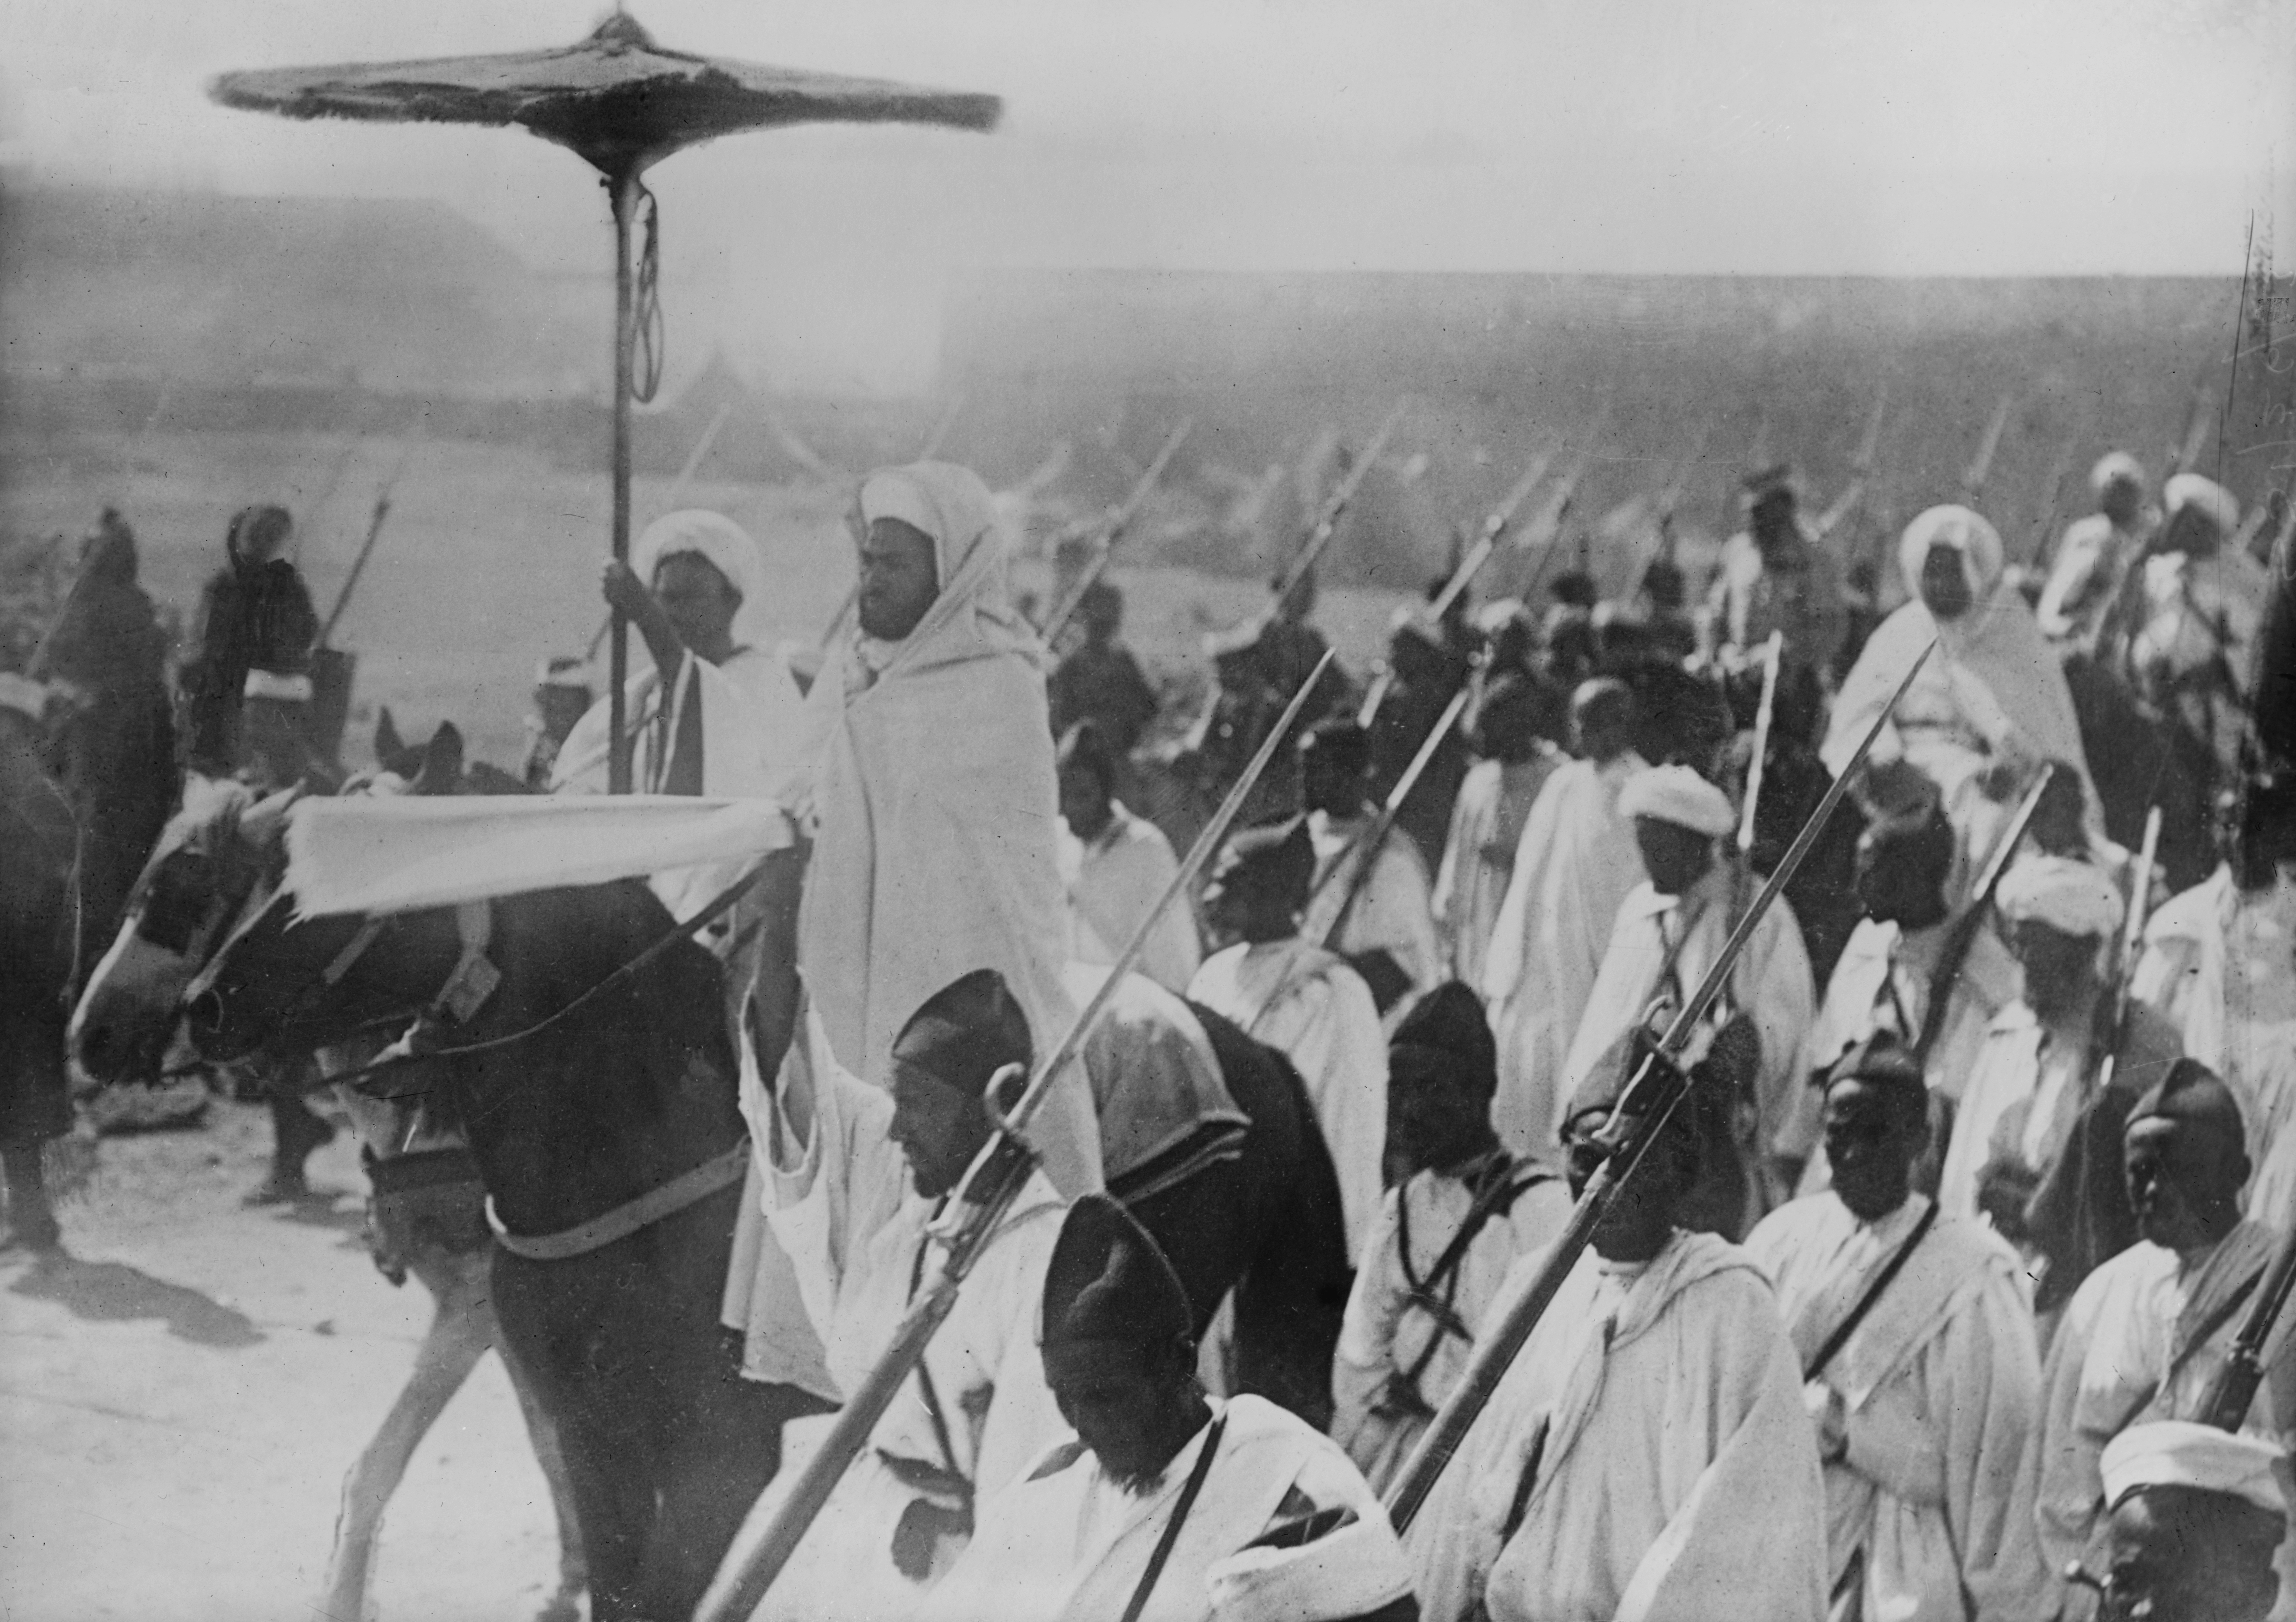 Senussi going to fight English in Egypt (circa 1915).